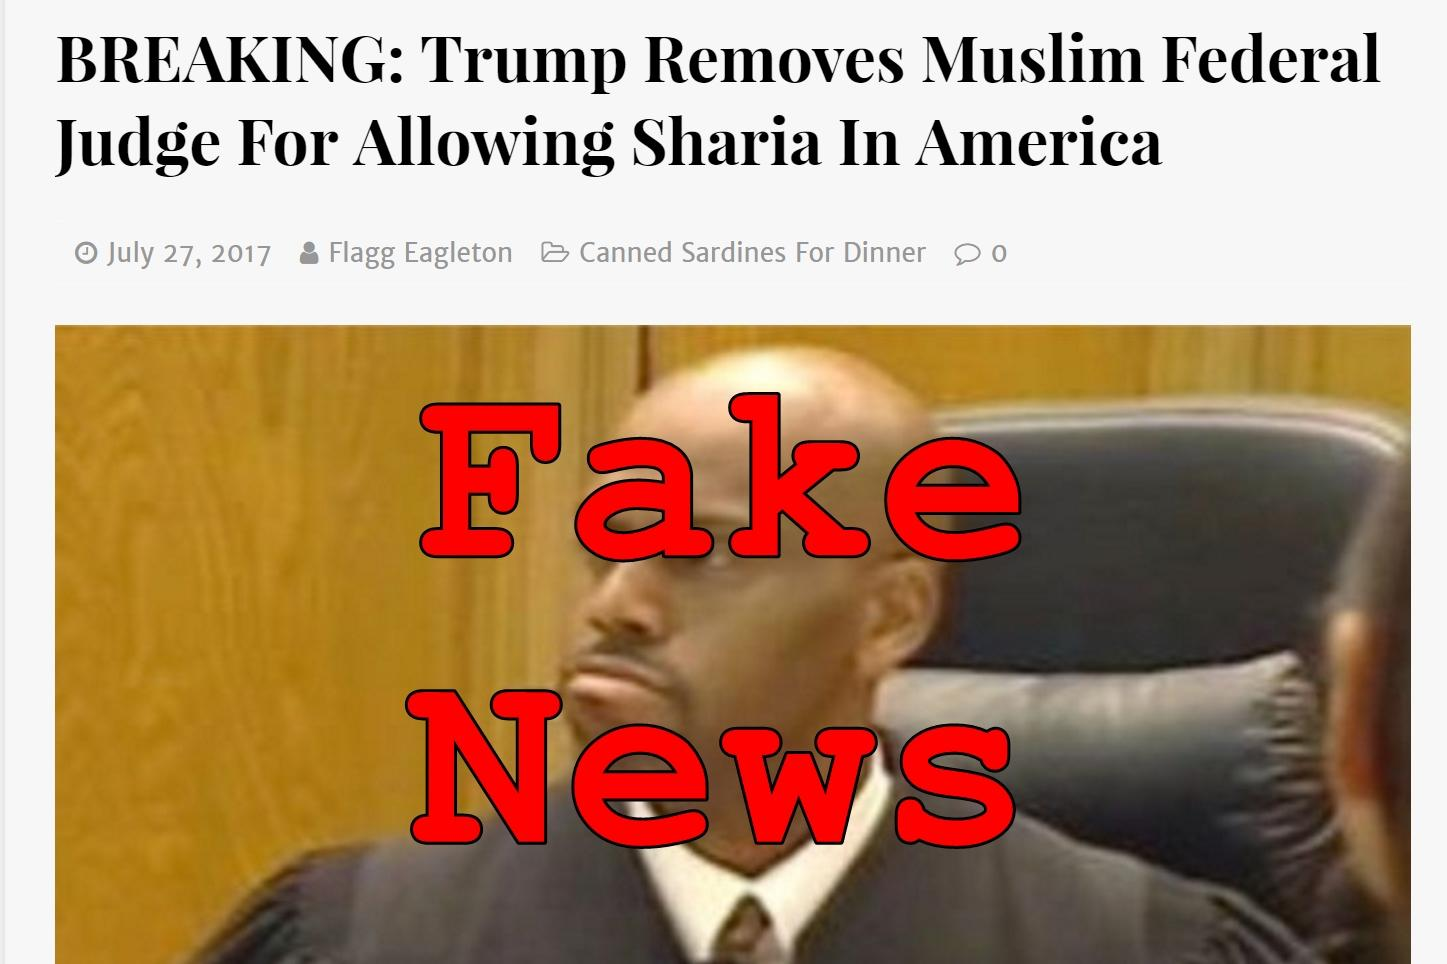 Fake News: Trump Did NOT Remove Muslim Federal Judge For Allowing Sharia In America